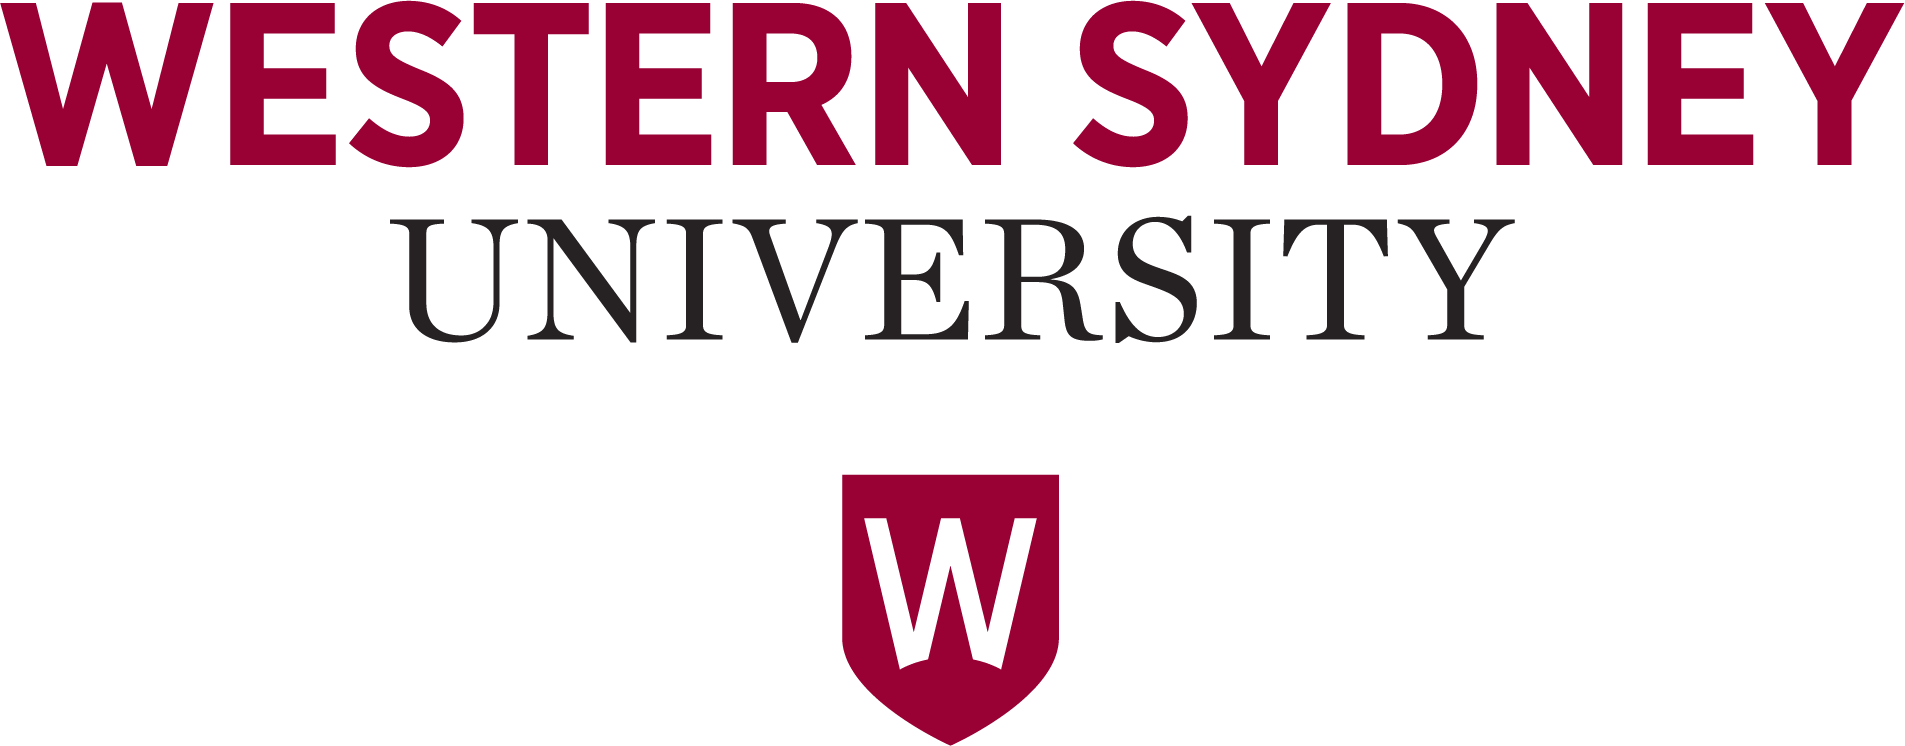 Western Sydney University on Real Adventure Group